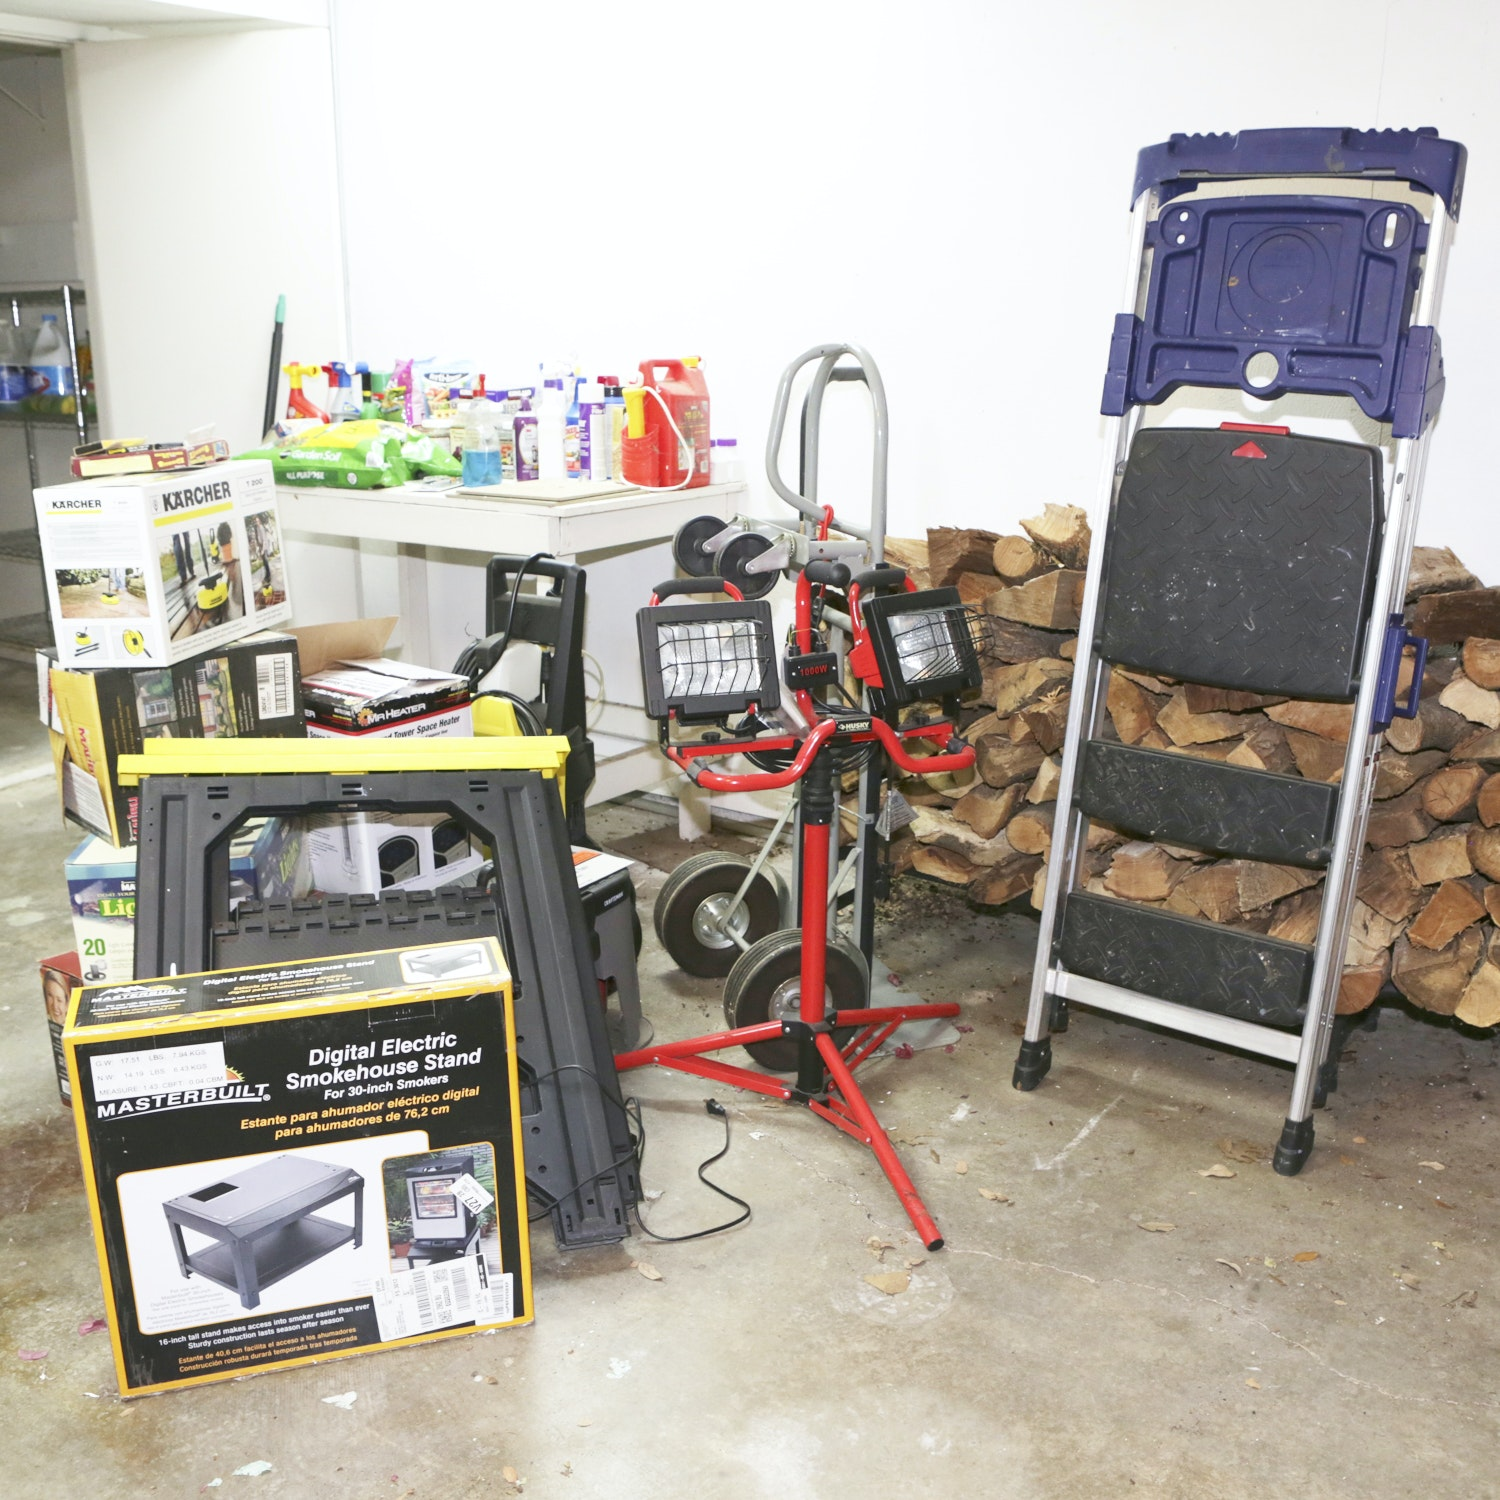 Assorted Tools Including Ladder, Light, Heater and More